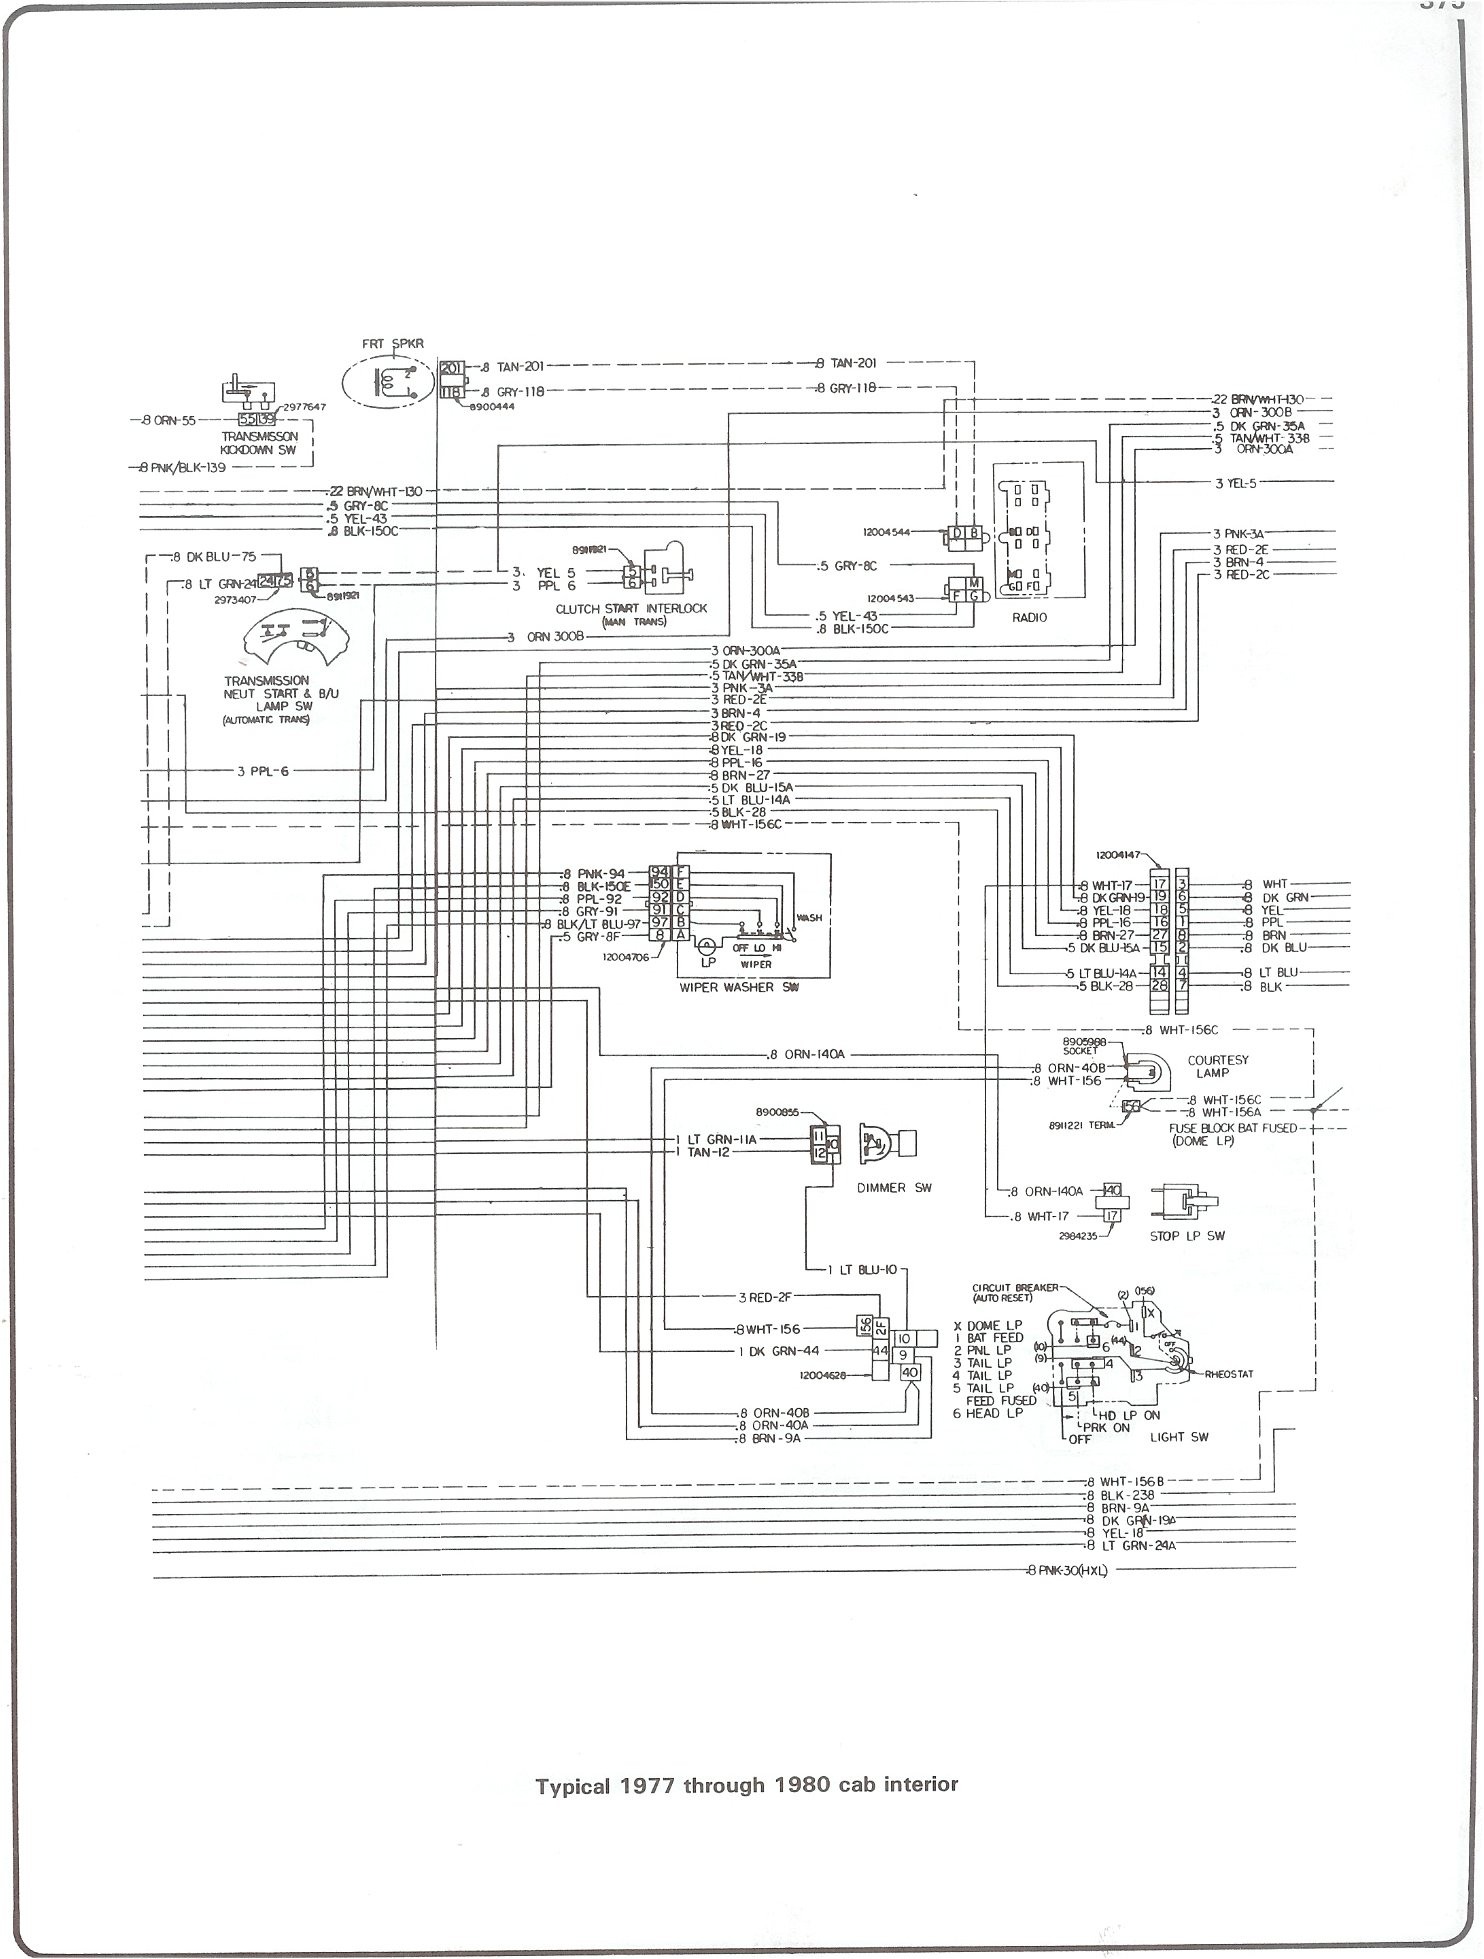 2003 Chevy 1500 Trailer Wiring Diagram : 2003 Gmc Trailer